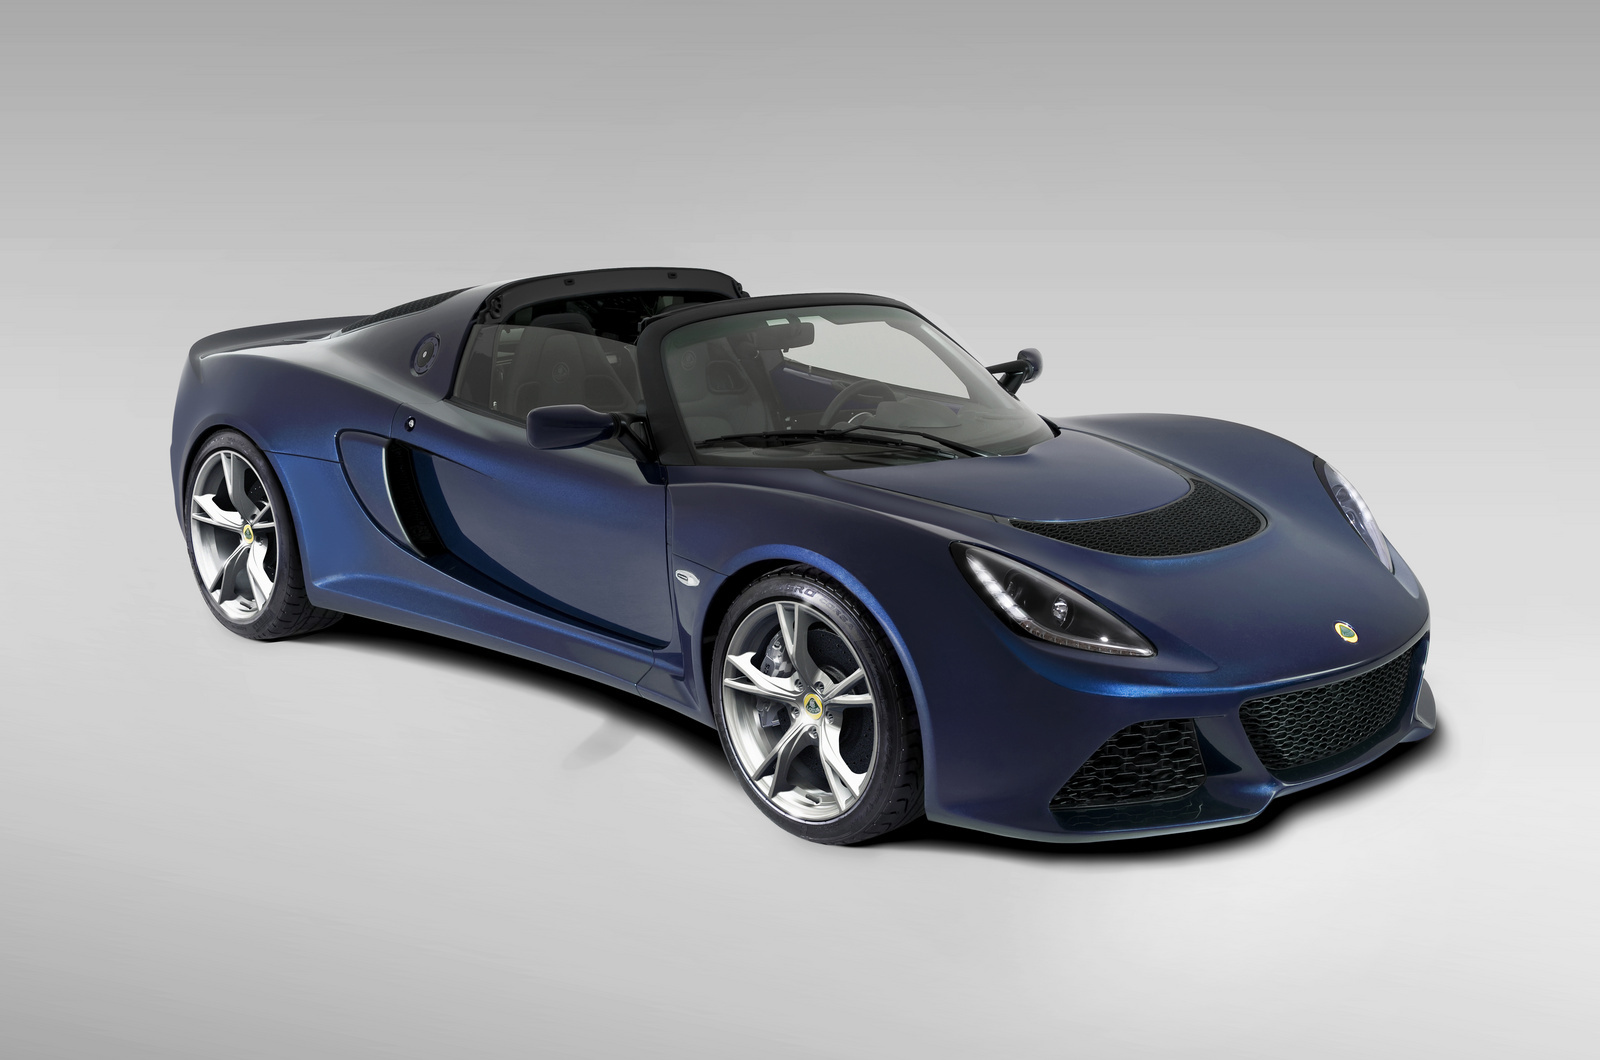 2013 Lotus Exige - Overview - CarGurus